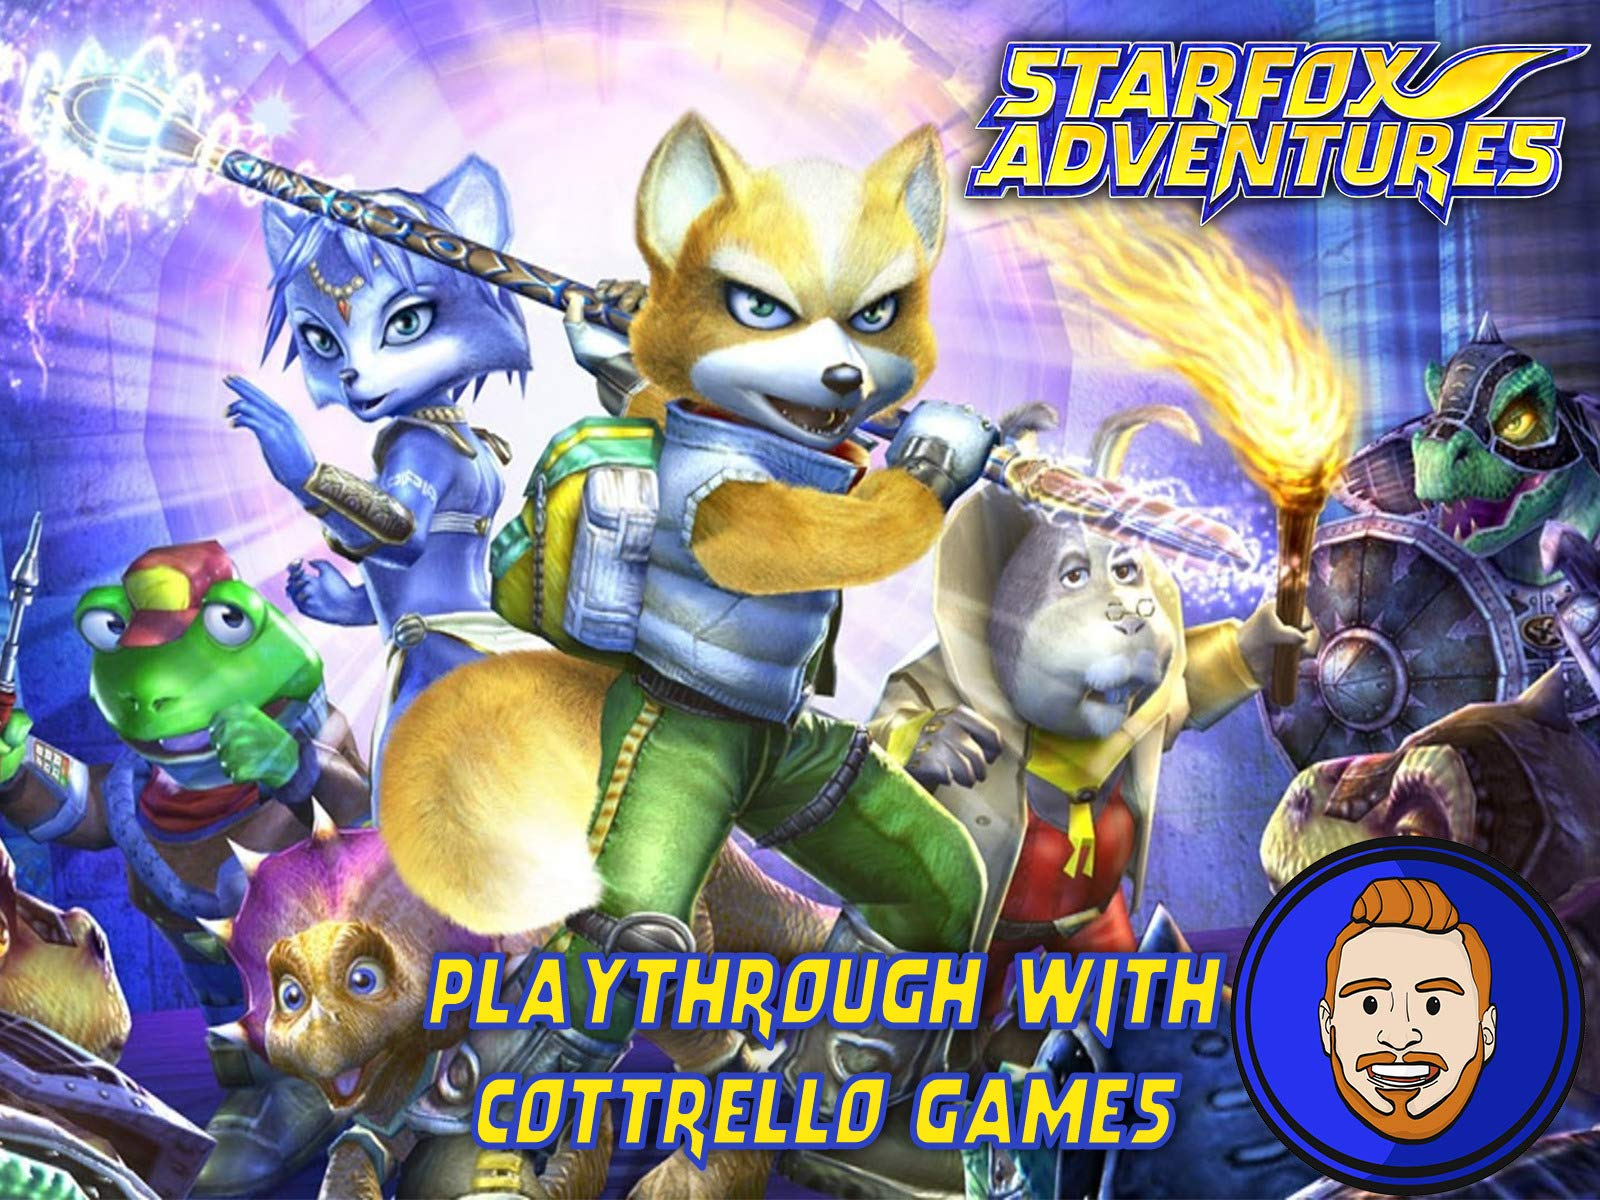 Star Fox Adventures Playthrough with Cottrello Games